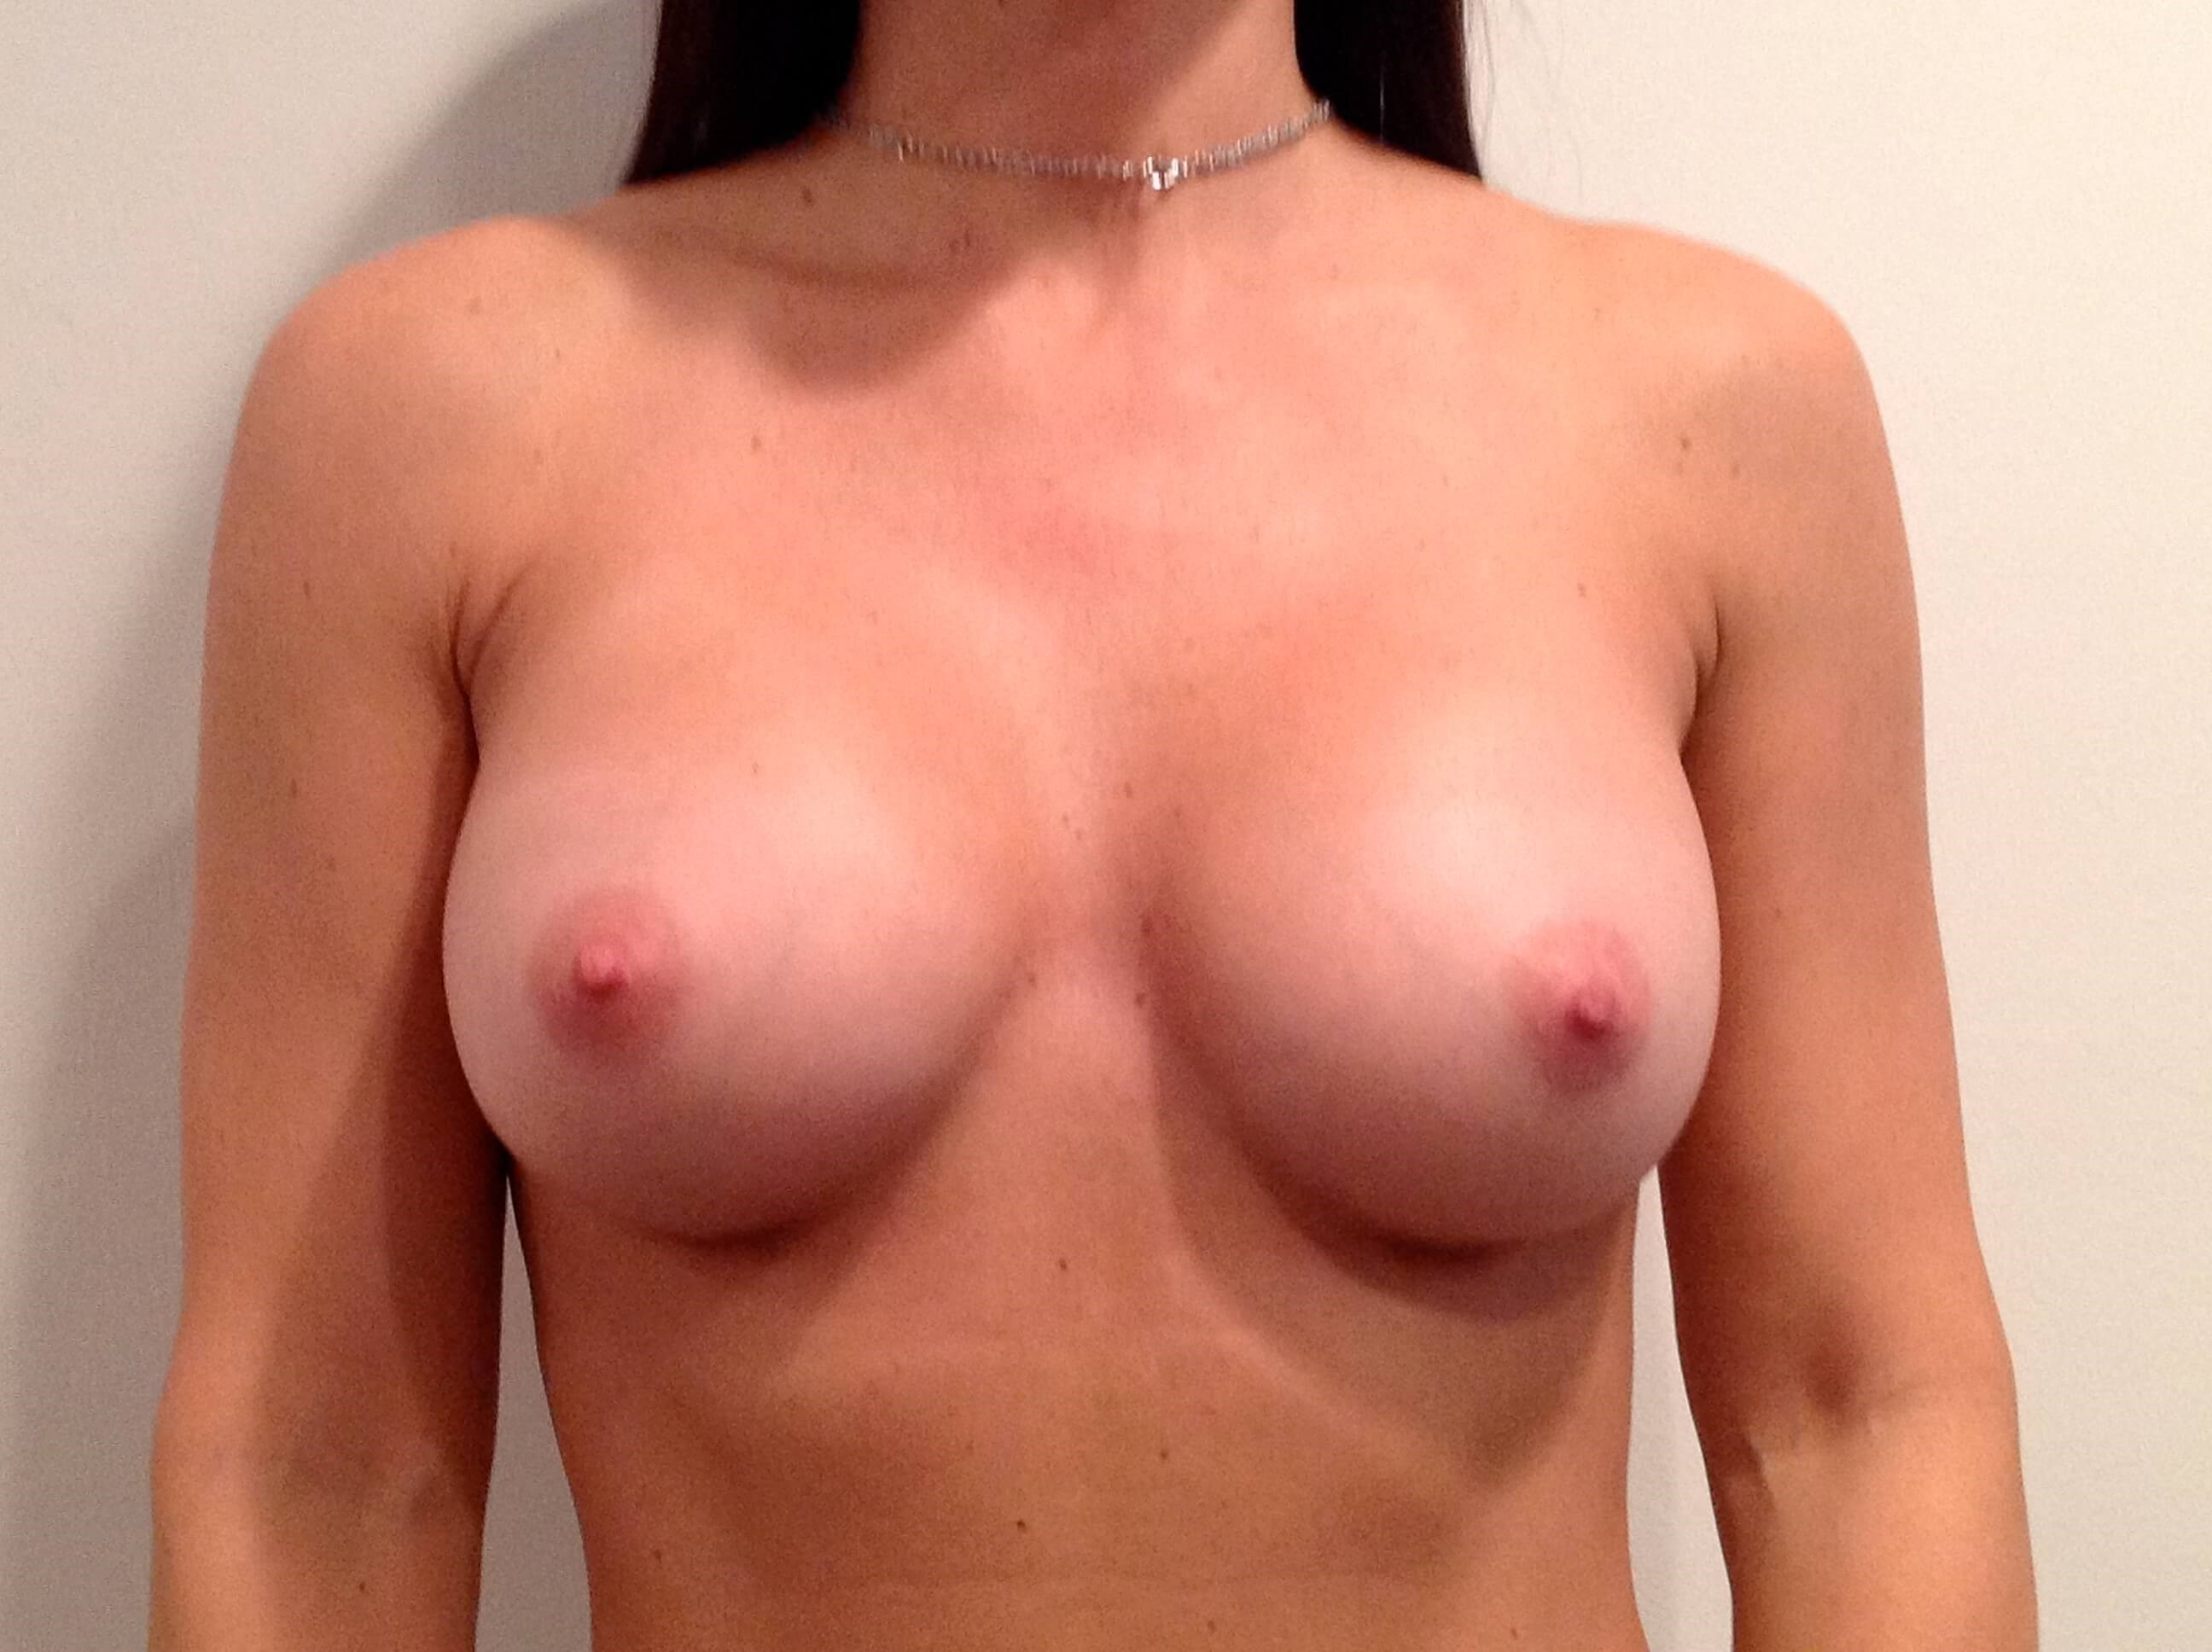 Breast Augmentation Front View After 325cc  Gel Implants